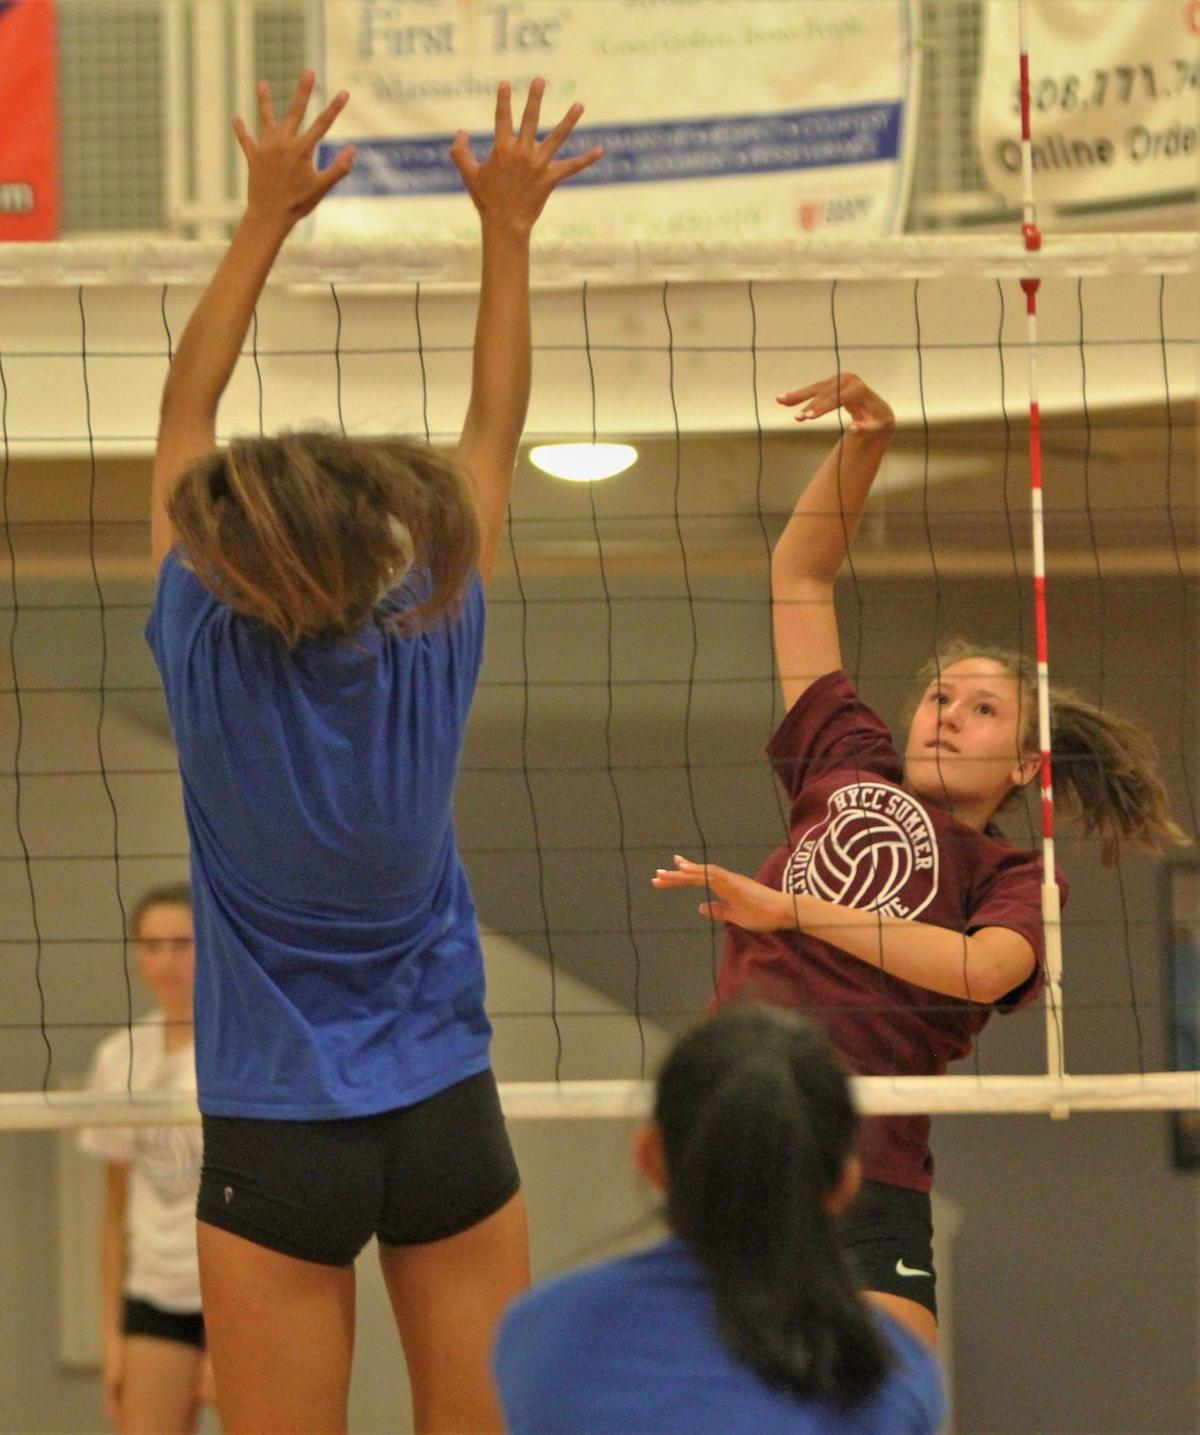 Cape Cod High School Volleyball - July 25, 2019